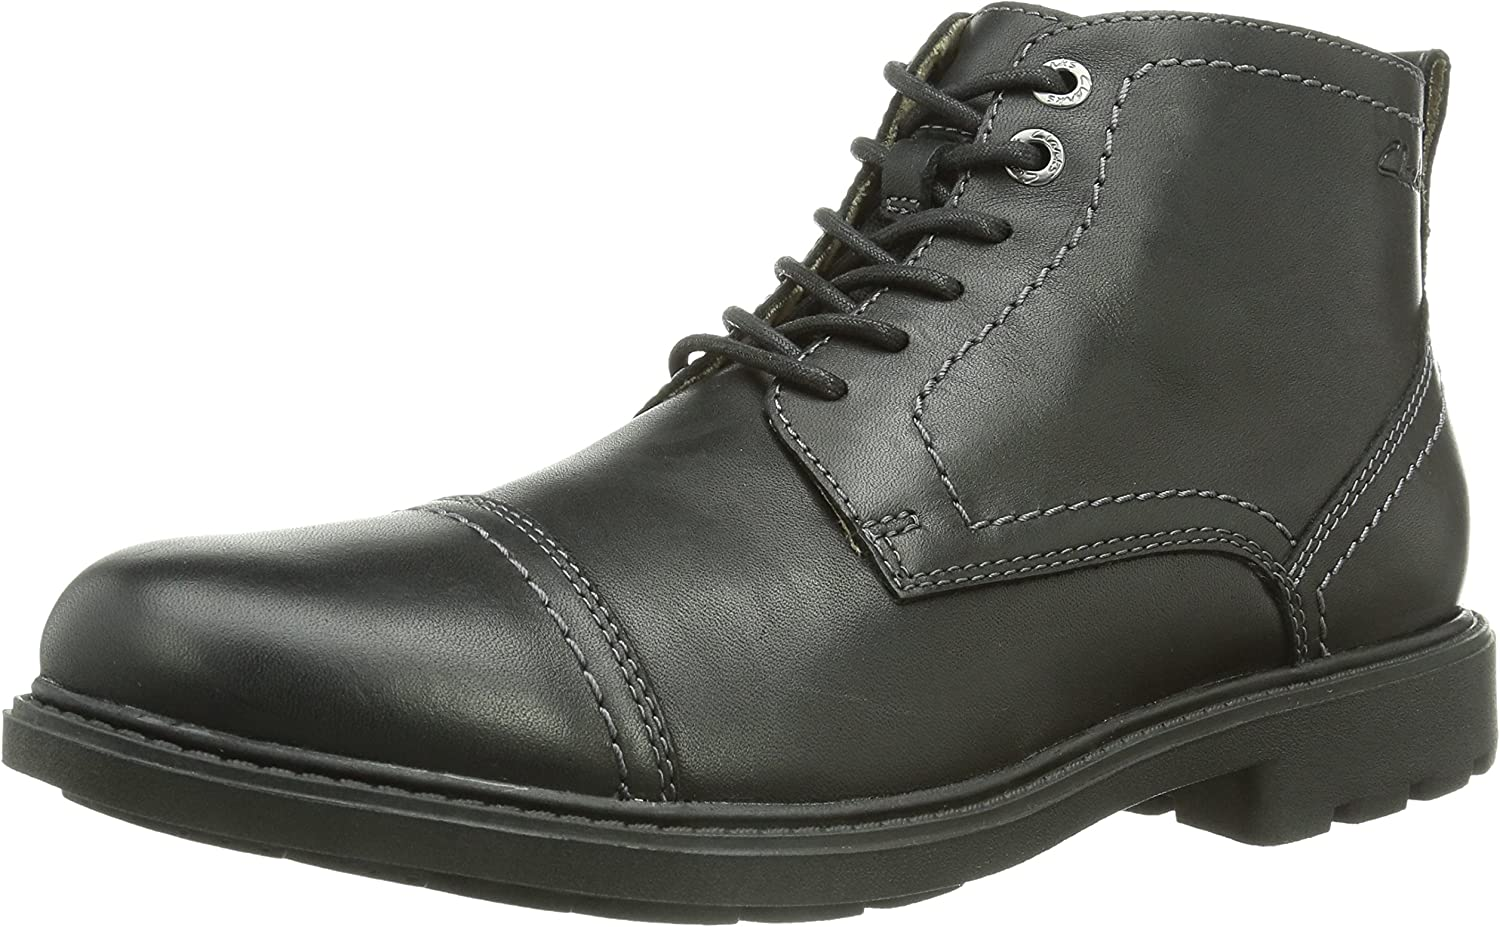 Clarks Sumner Heath, Men's Boots